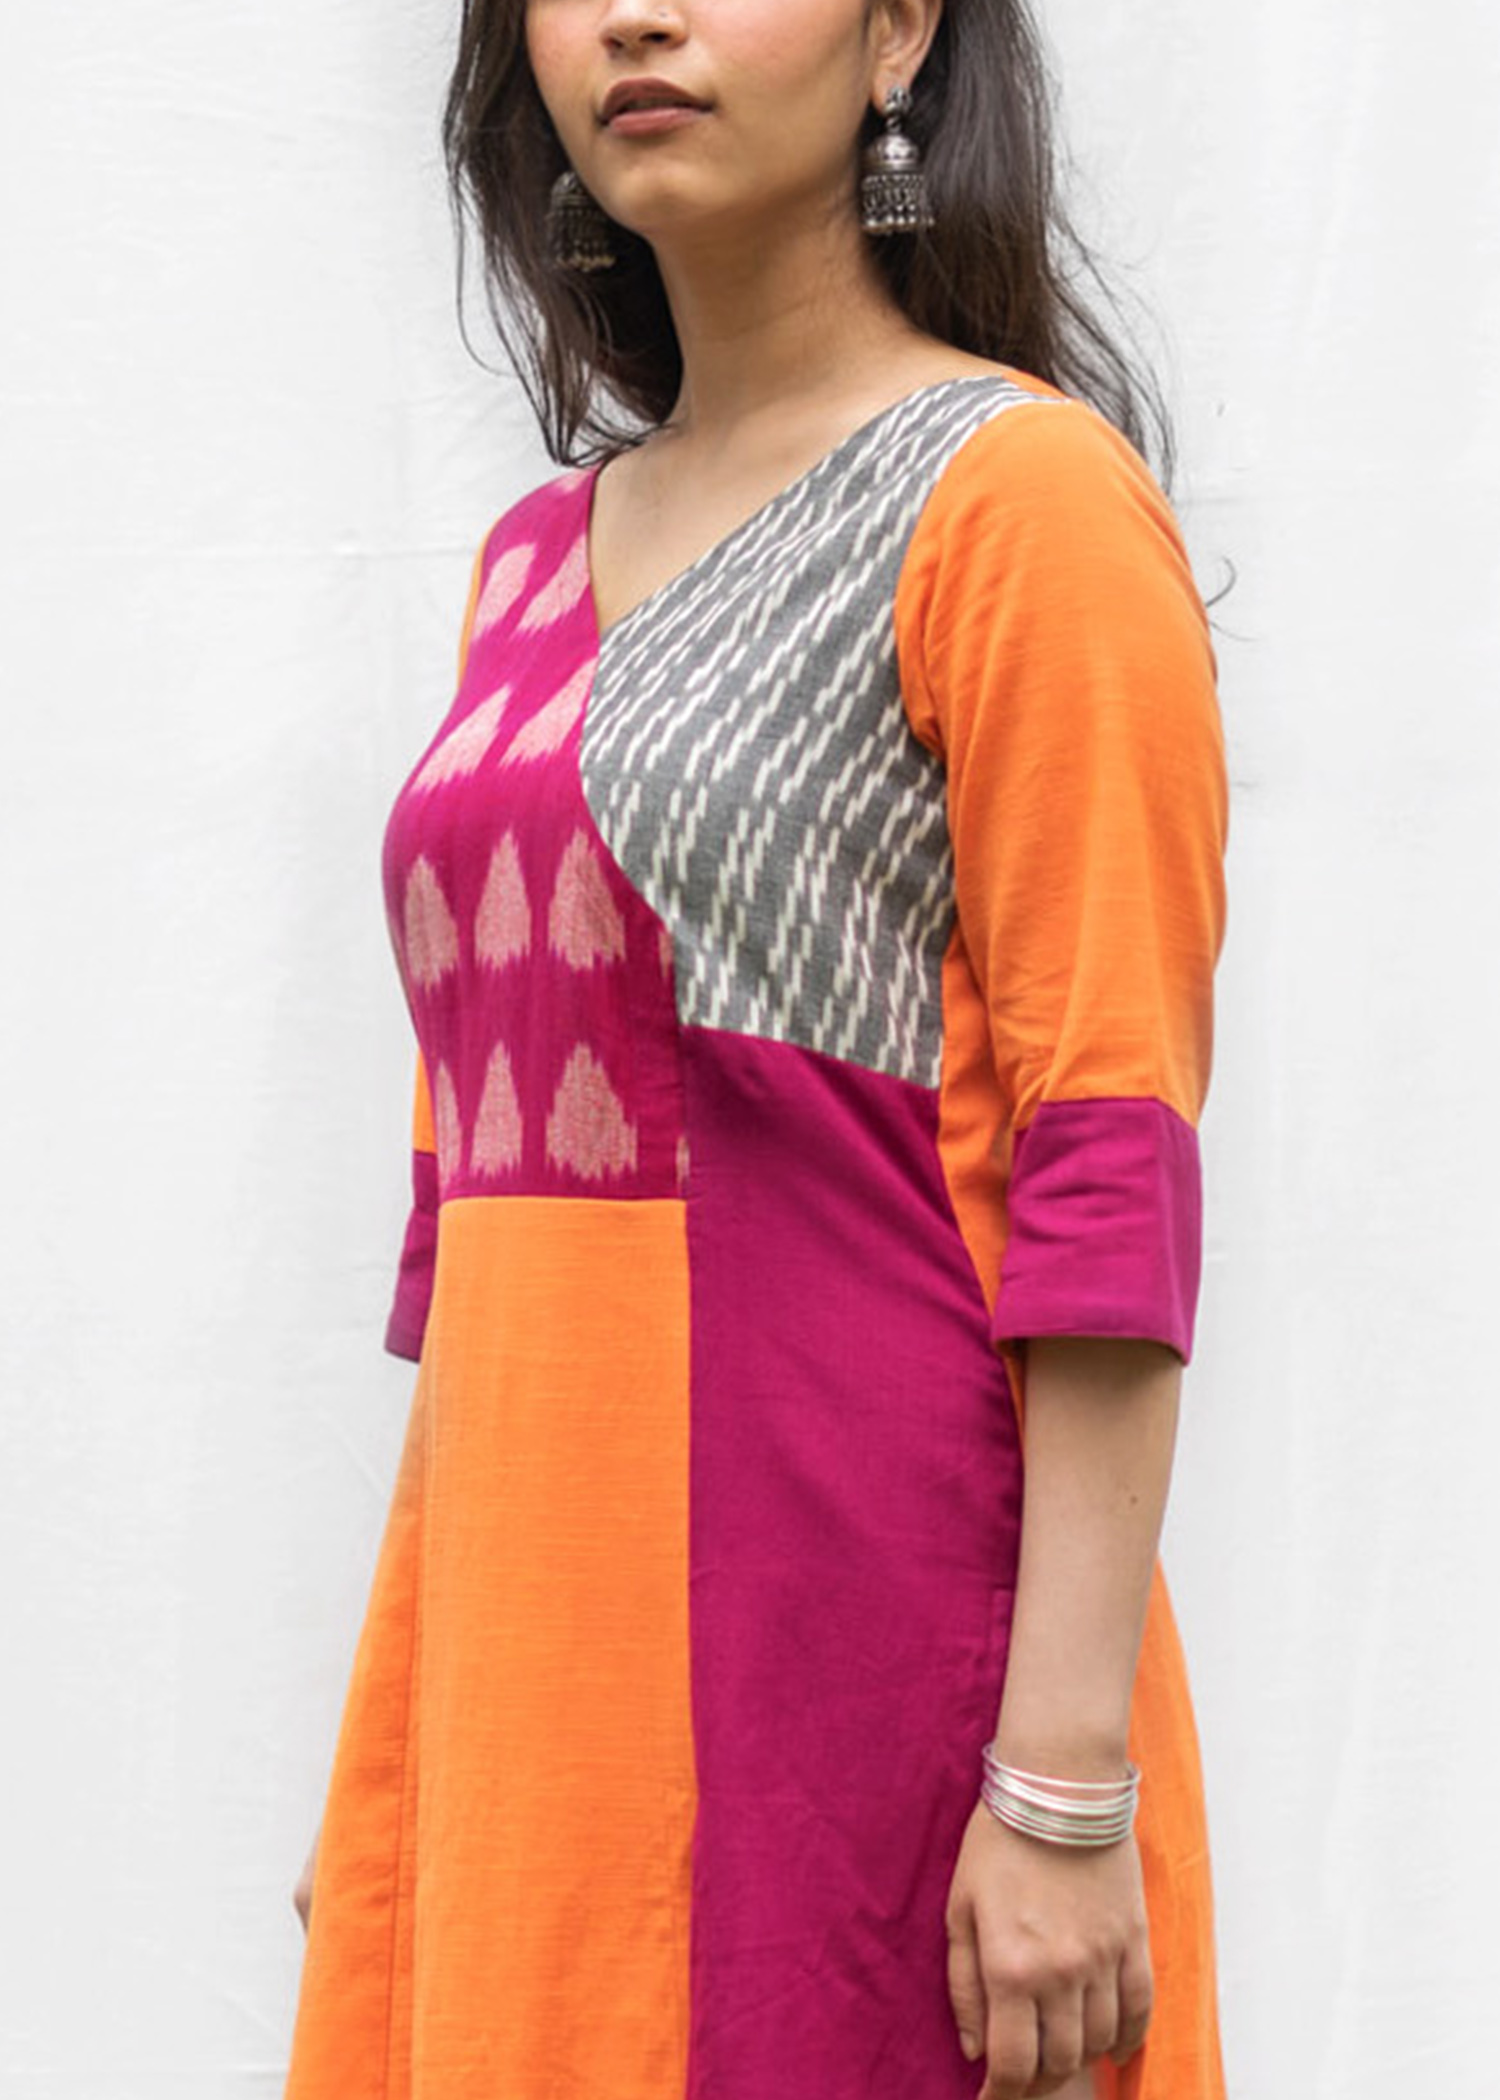 catalog/Color Block/tang kurta 2.jpg